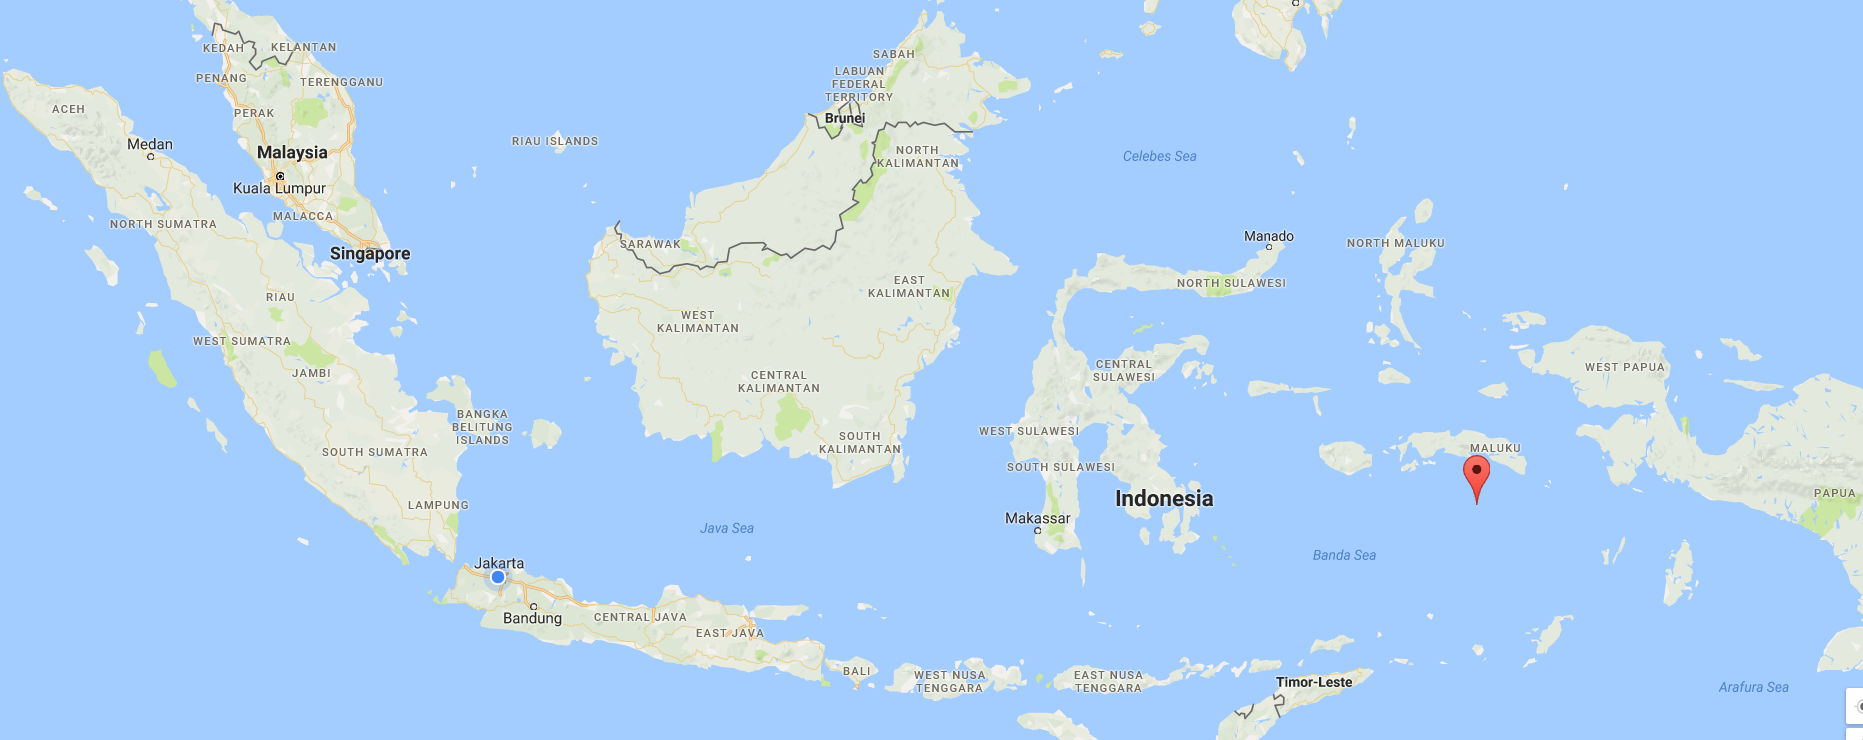 A tale of run island arif nugraha ruswidyo medium indonesia as seen on google maps blue dot refers to the exact location where i wrote this article red mark points out the location of run island gumiabroncs Gallery